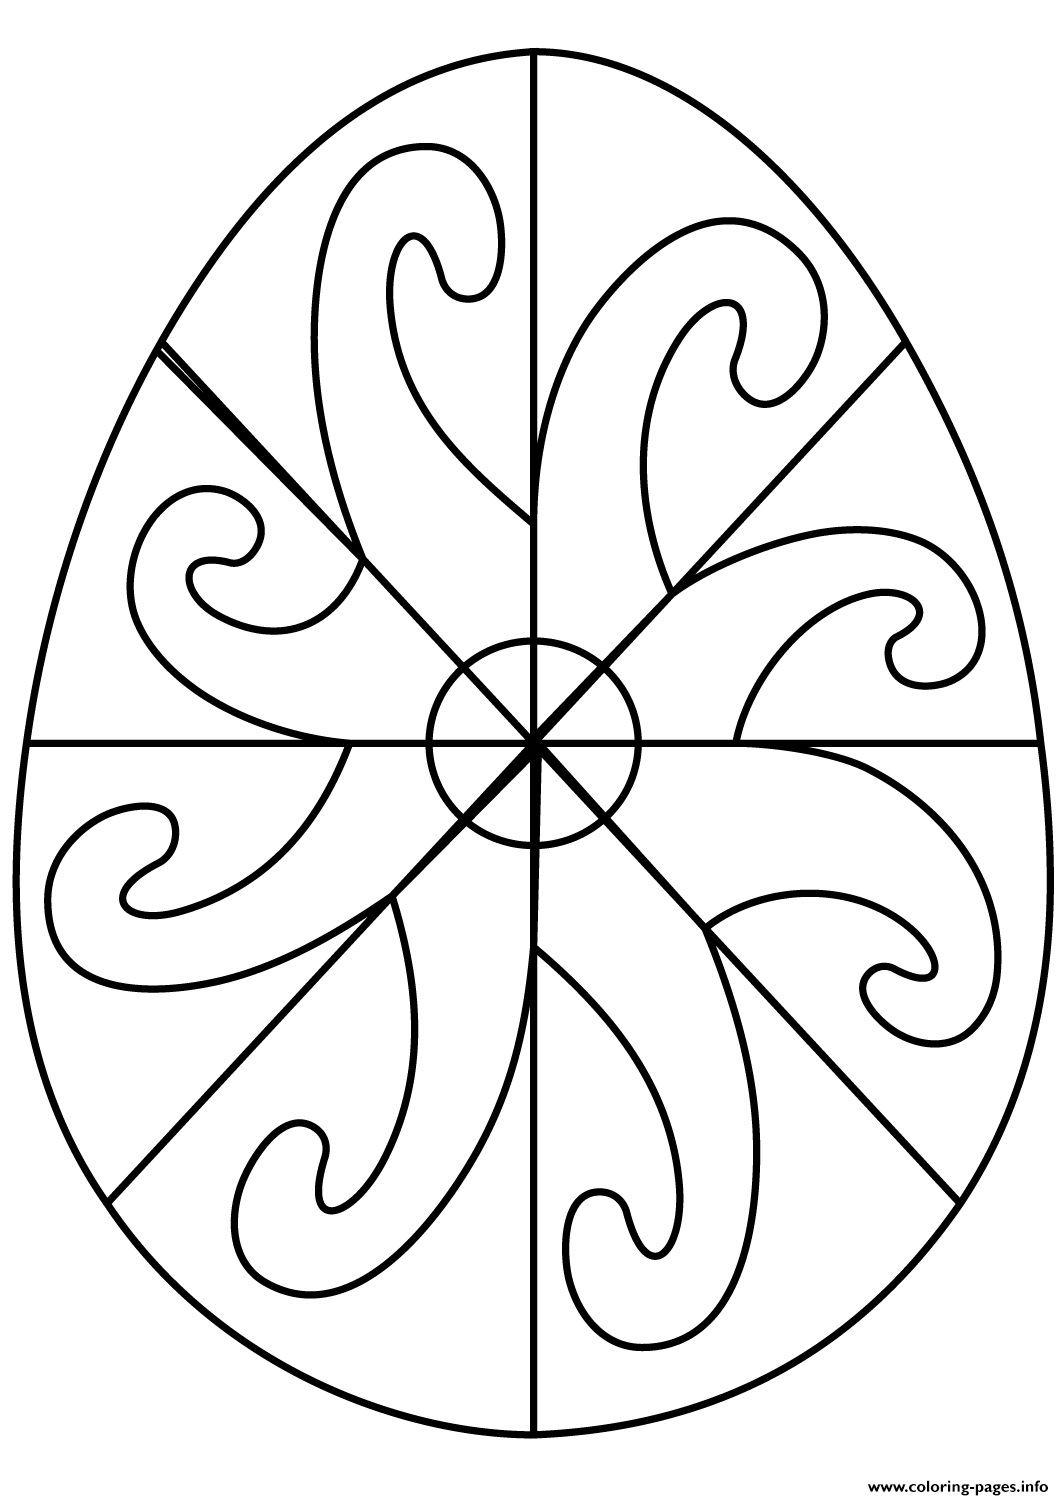 Easter Egg with Spiral Pattern Coloring Pages Printable Gallery Of Easter Coloring Pages for Kids Crazy Little Projects Printable